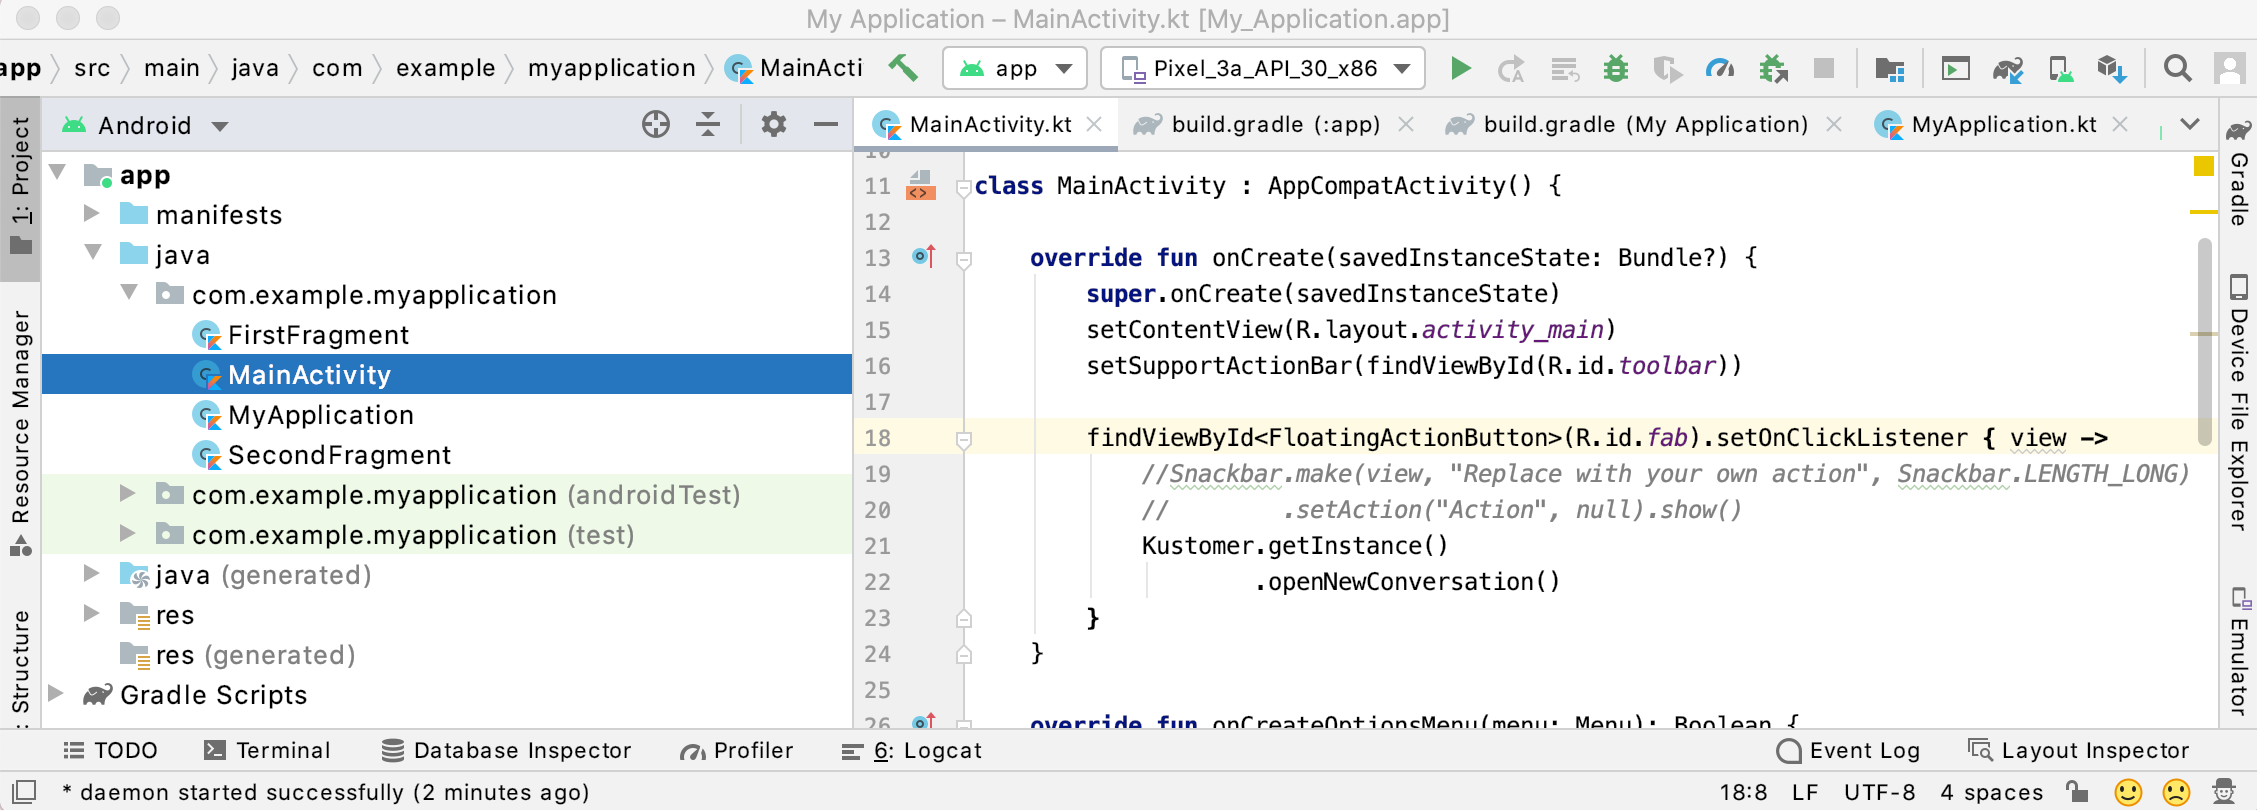 Launch the Kustomer Chat SDK and open an new conversation in your `MainActivity.kt` file.